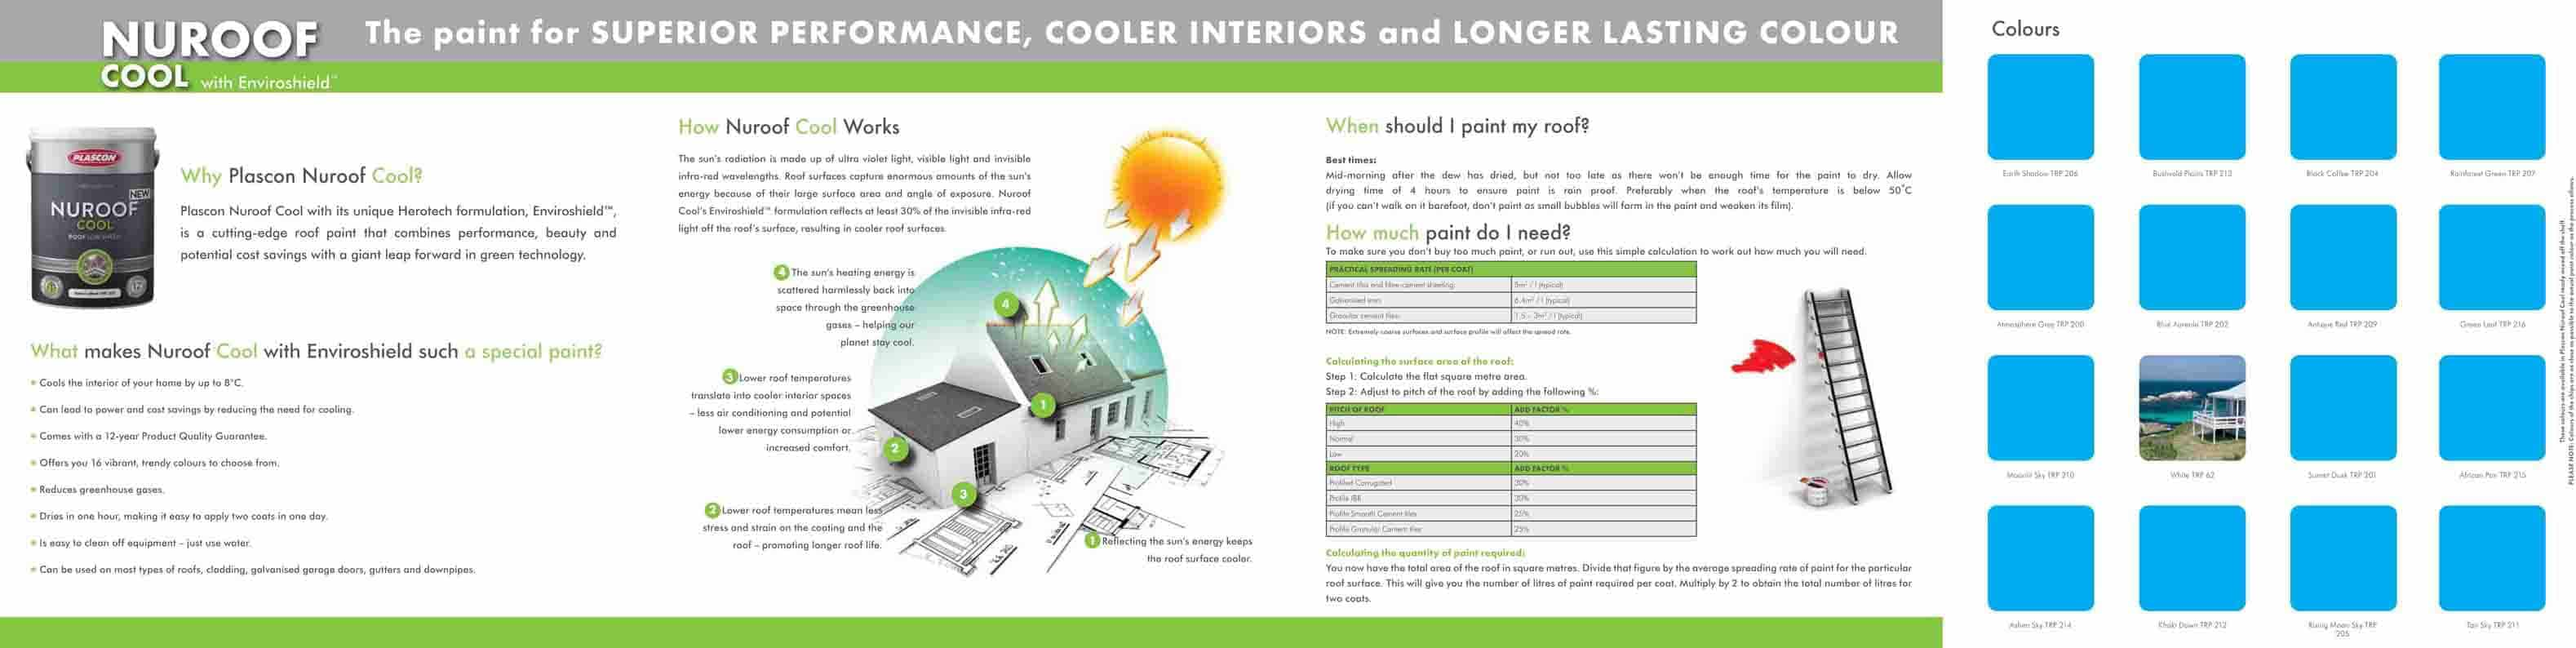 plascon s nuroof cool enviroshield lowers energy consumption plascon brochure nuroof cool 2